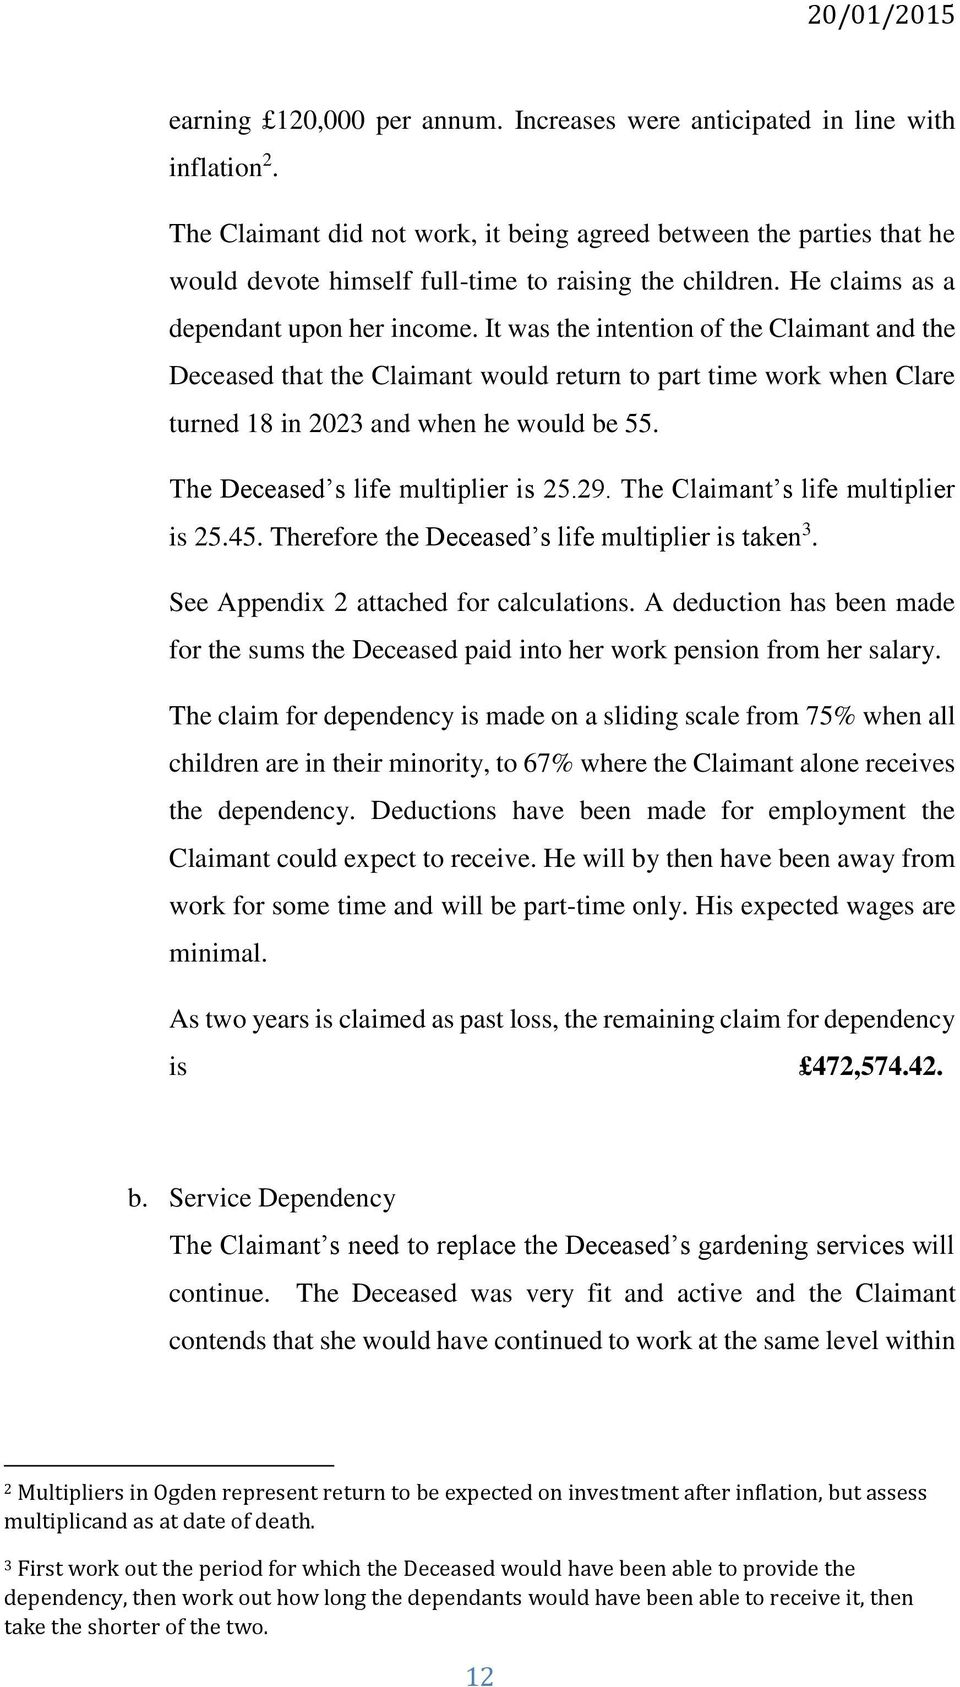 It was the intention of the Claimant and the Deceased that the Claimant would return to part time work when Clare turned 18 in 2023 and when he would be 55. The Deceased s life multiplier is 25.29.